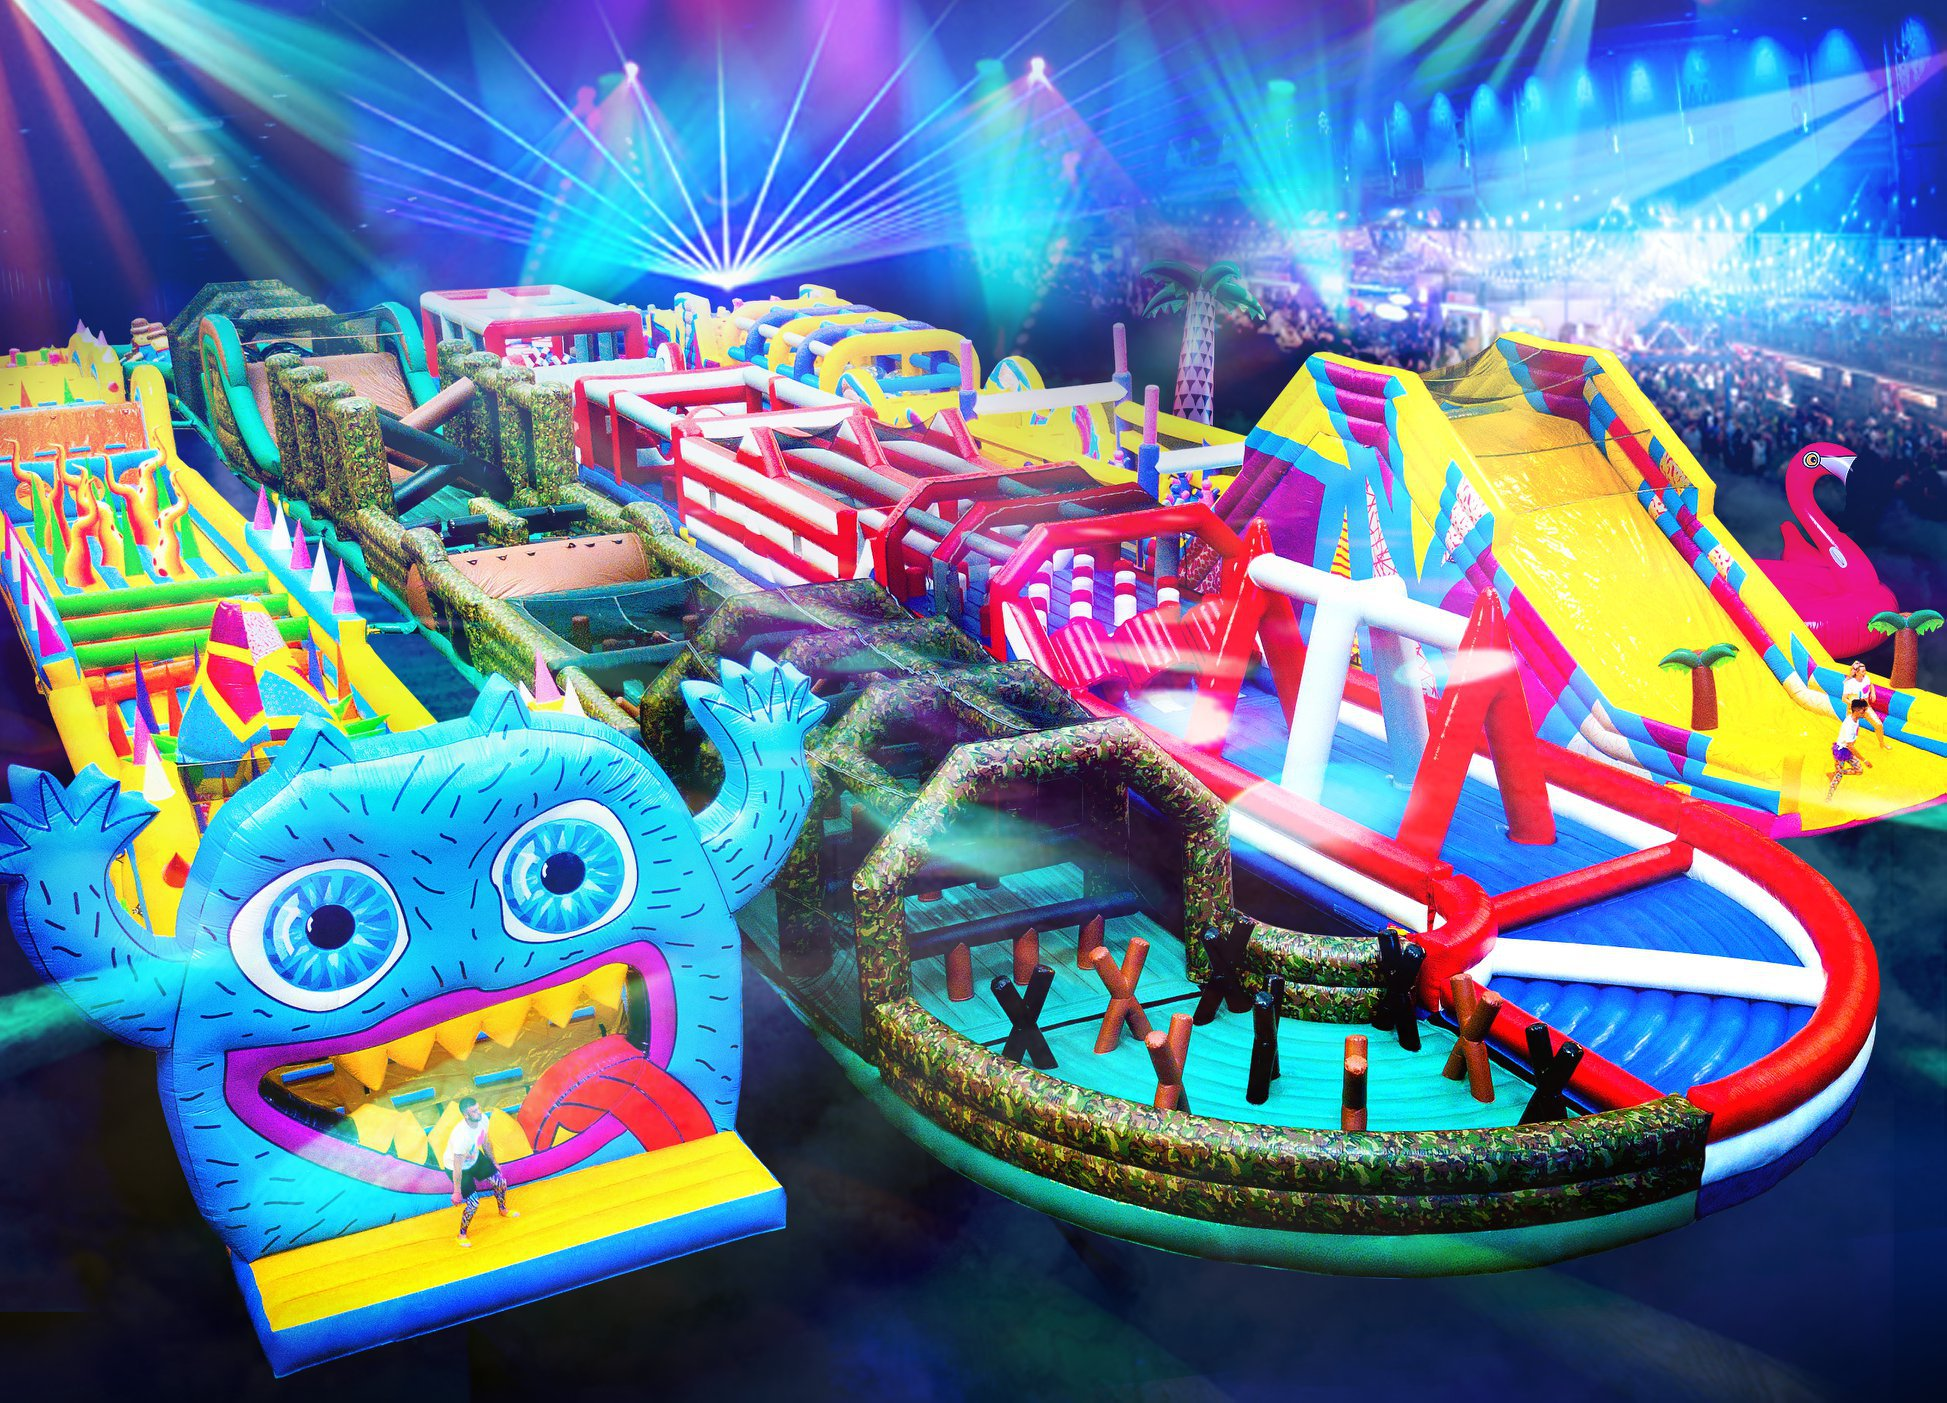 world's biggest inflatable obstacle course is returning to London Picture: The Monster UK